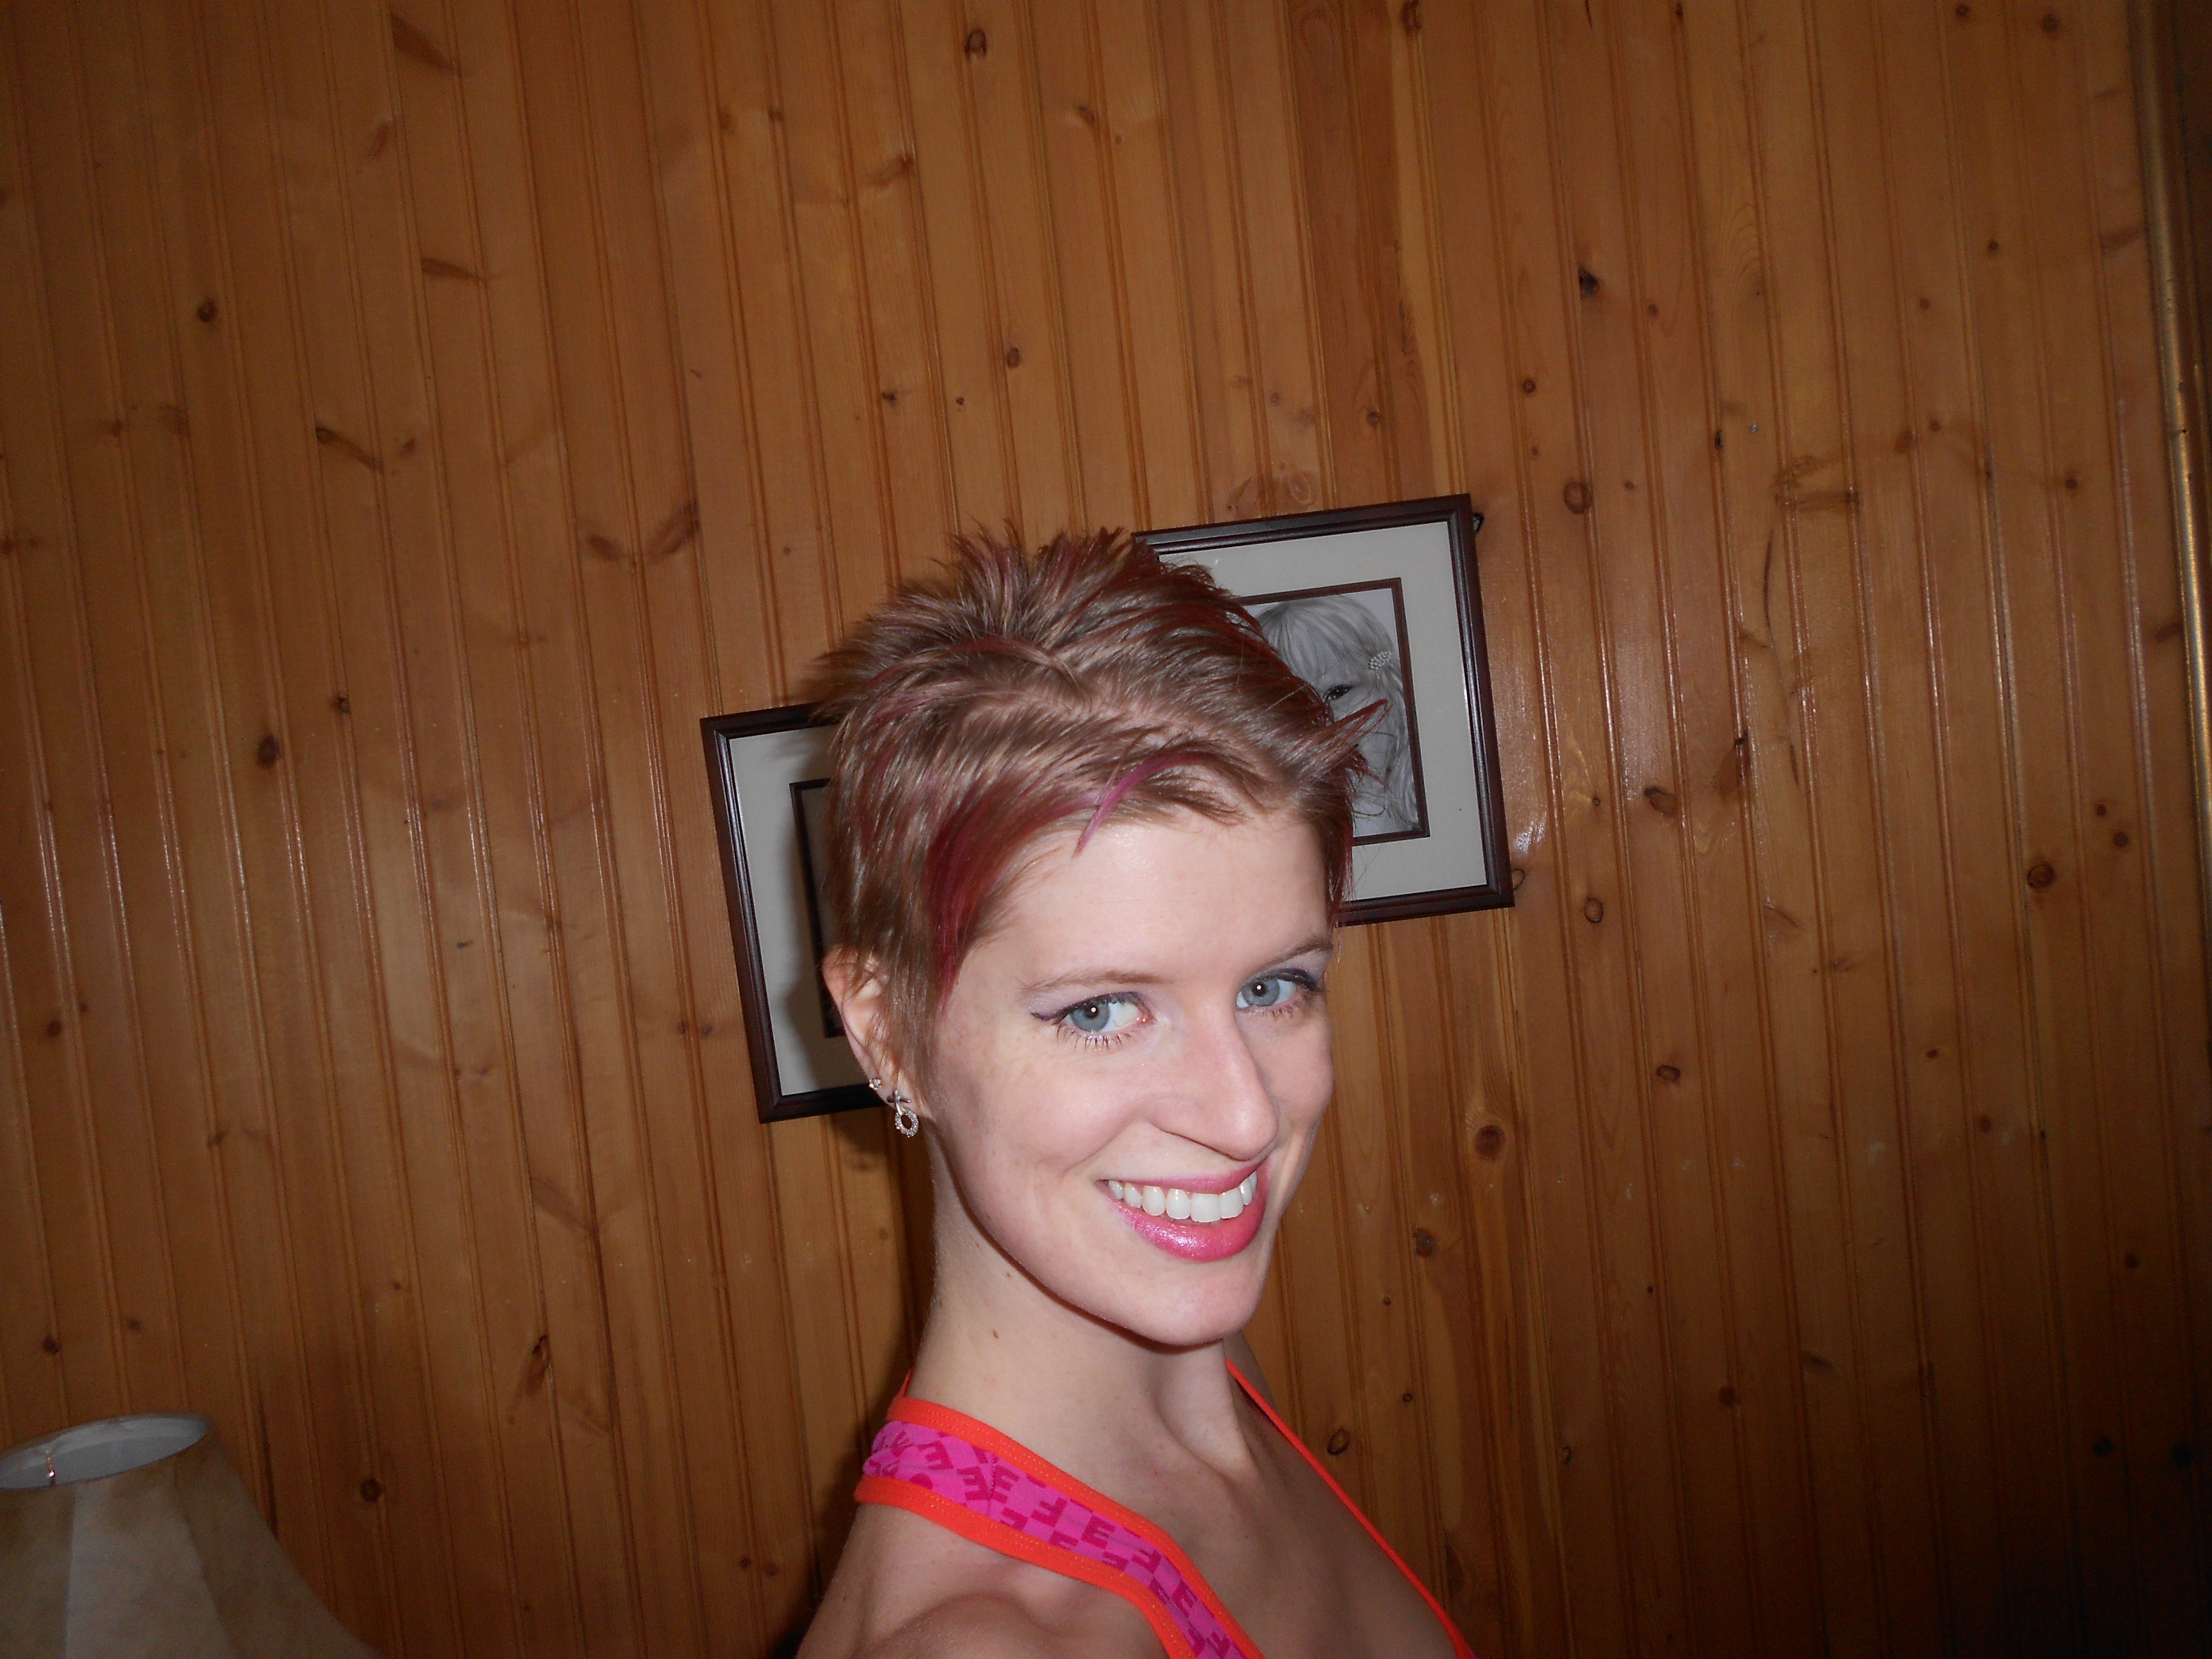 Best ideas about How To Cut Your Own Hair Short . Save or Pin How To Cut Pixie Haircut With Clippers Now.